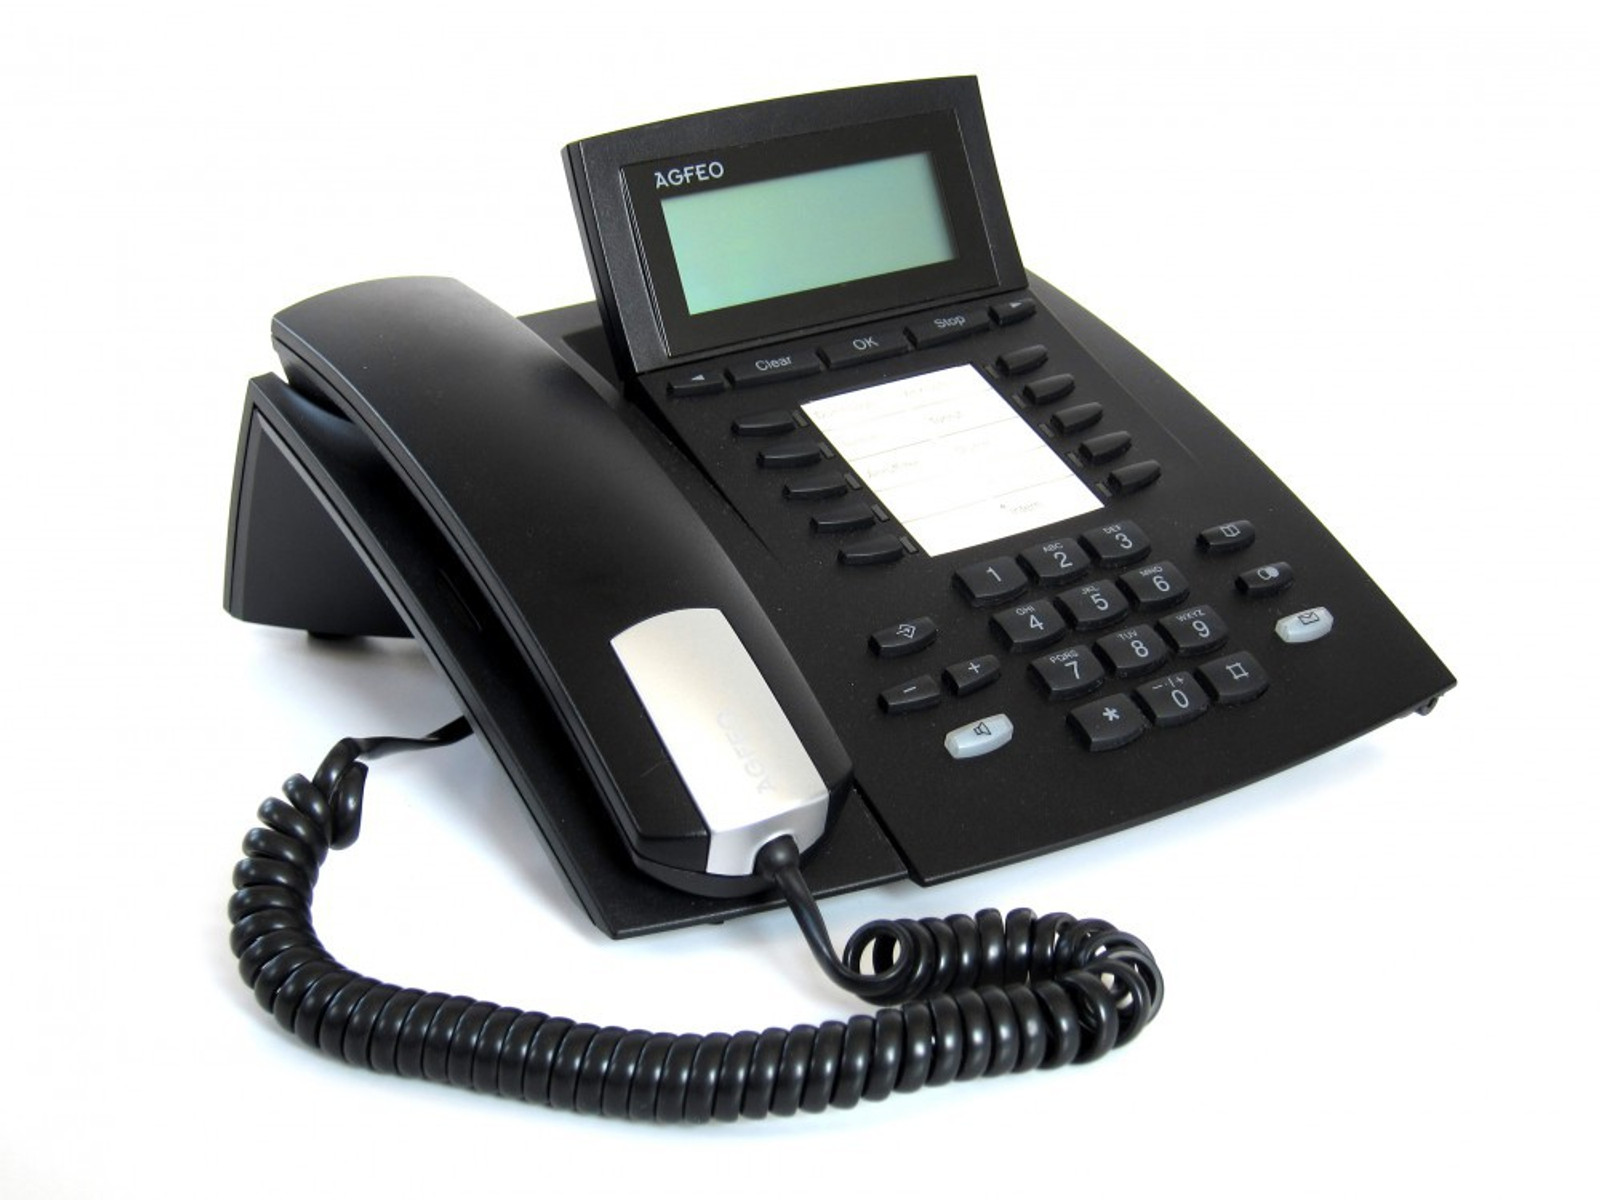 S0 Systemtelefon silber // inkl MwSt. Agfeo ST 40